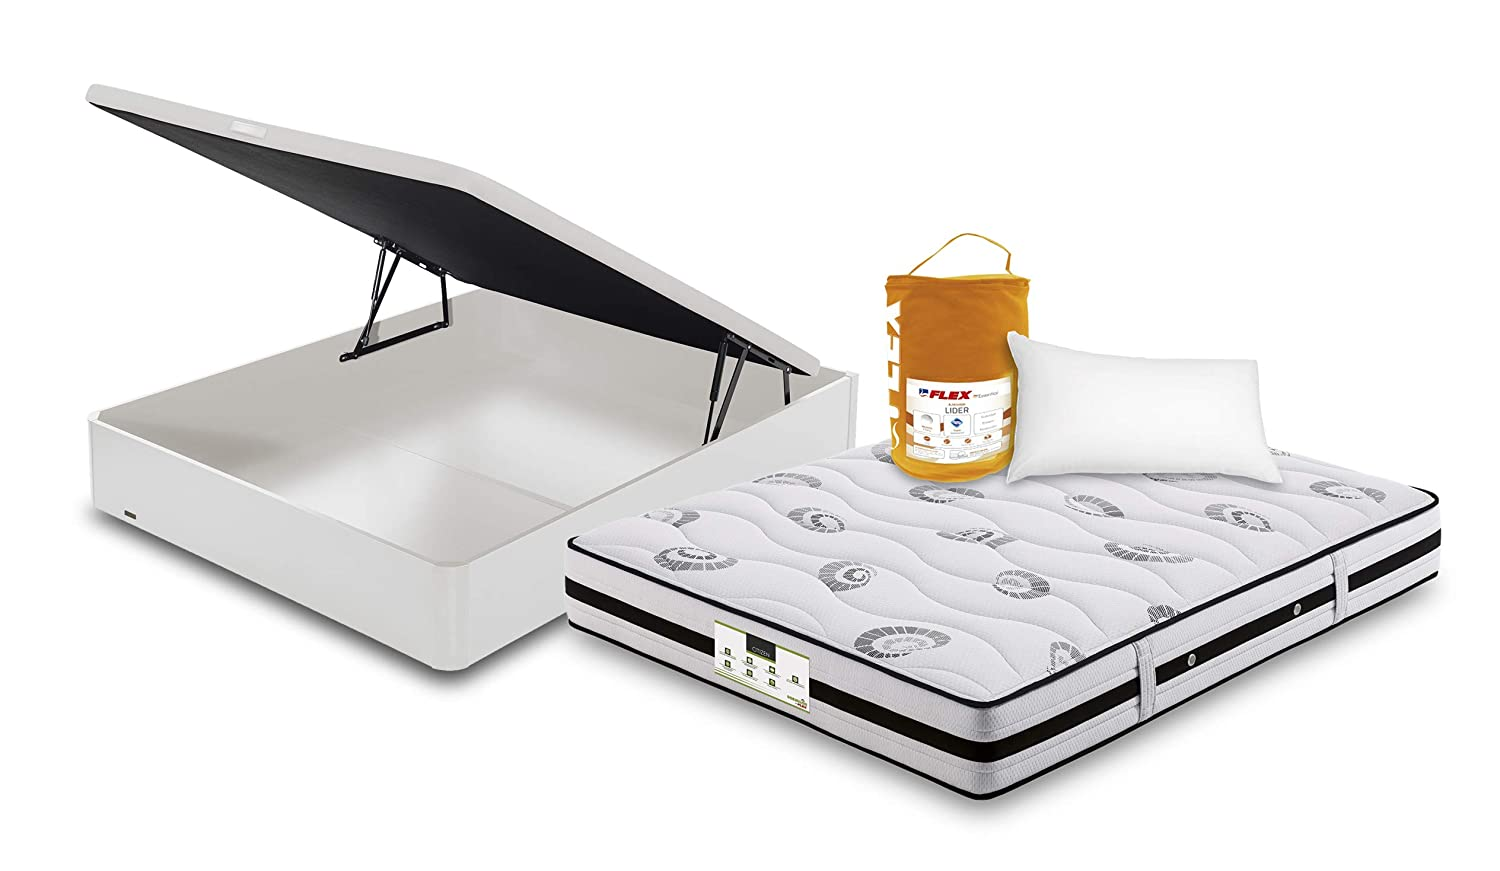 Flex Pack CANAPE ABATIBLE Mad 19 Tapa 3D COLCHON Citizen Almohada LIDER WENGUE 90x190: Amazon.es: Hogar